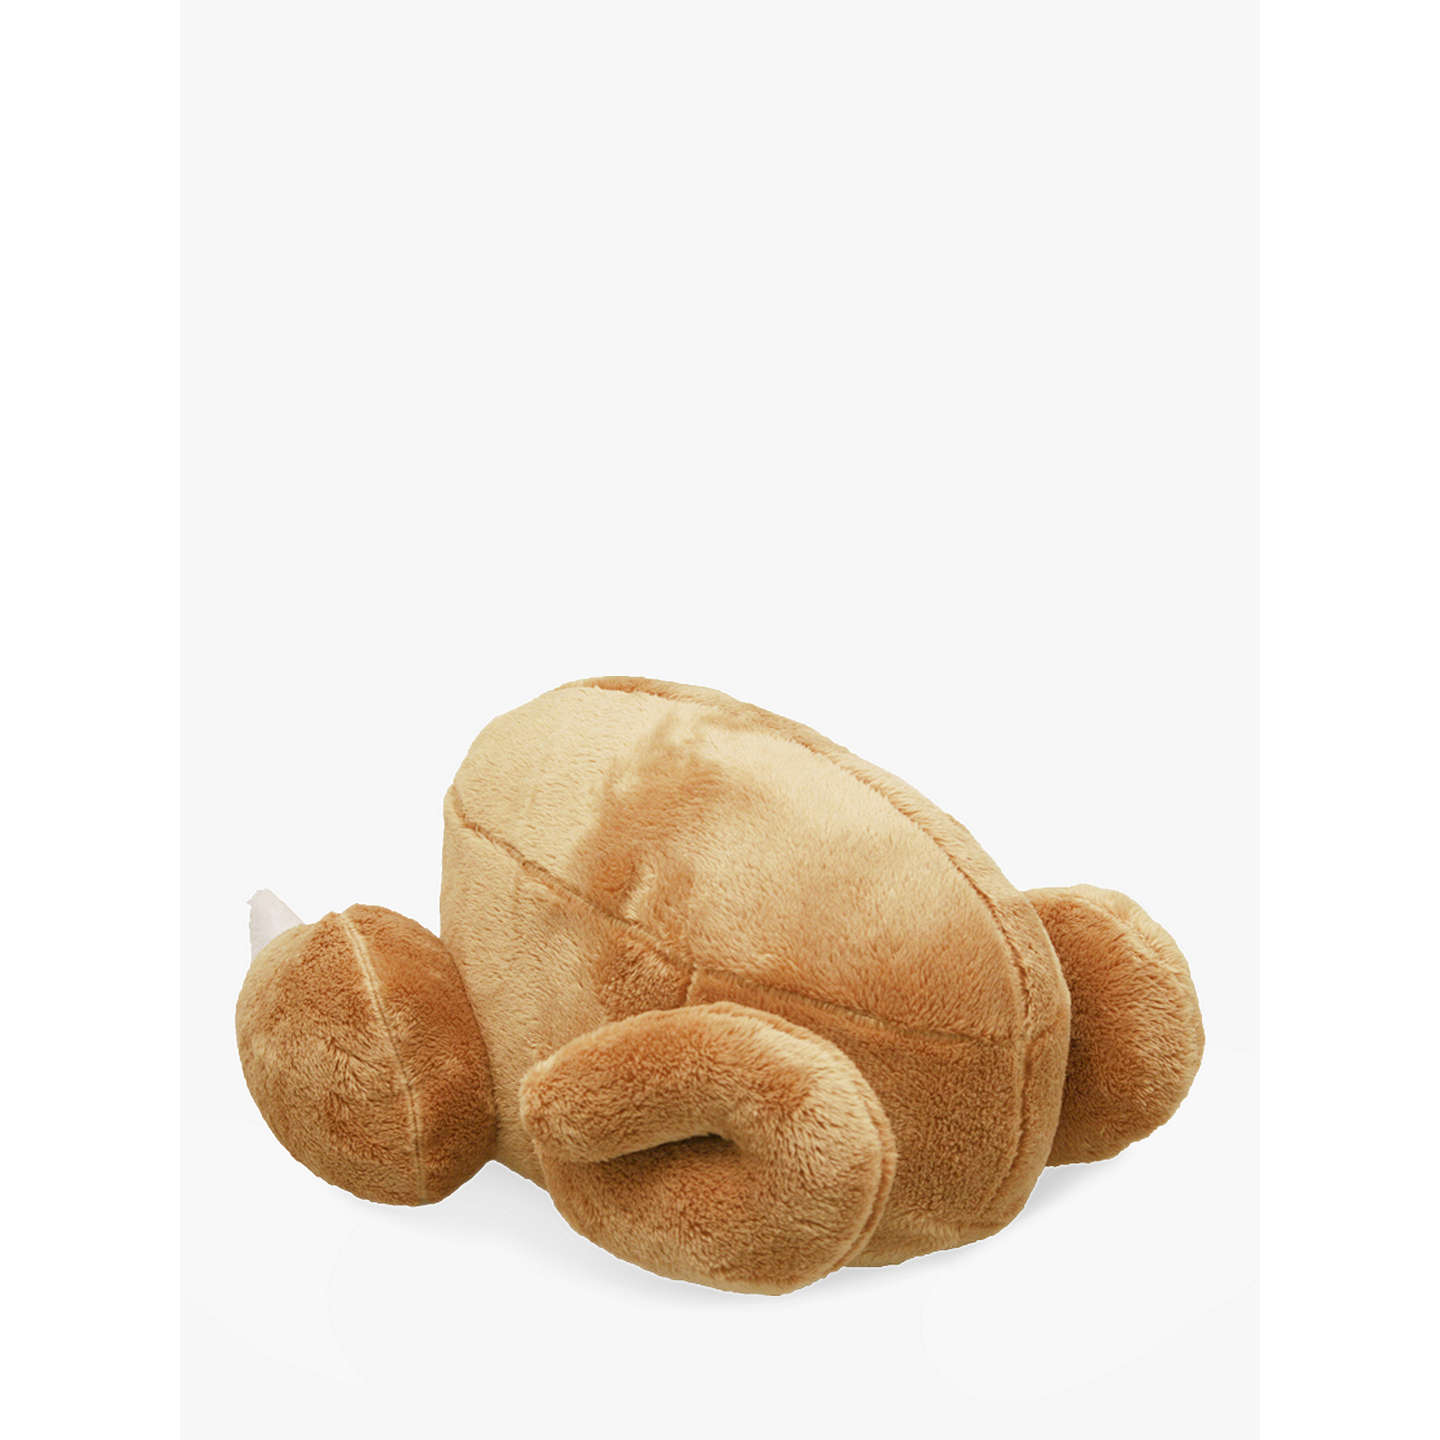 BuyFred & Ginger Christmas Turkey Dog Toy Online at johnlewis.com